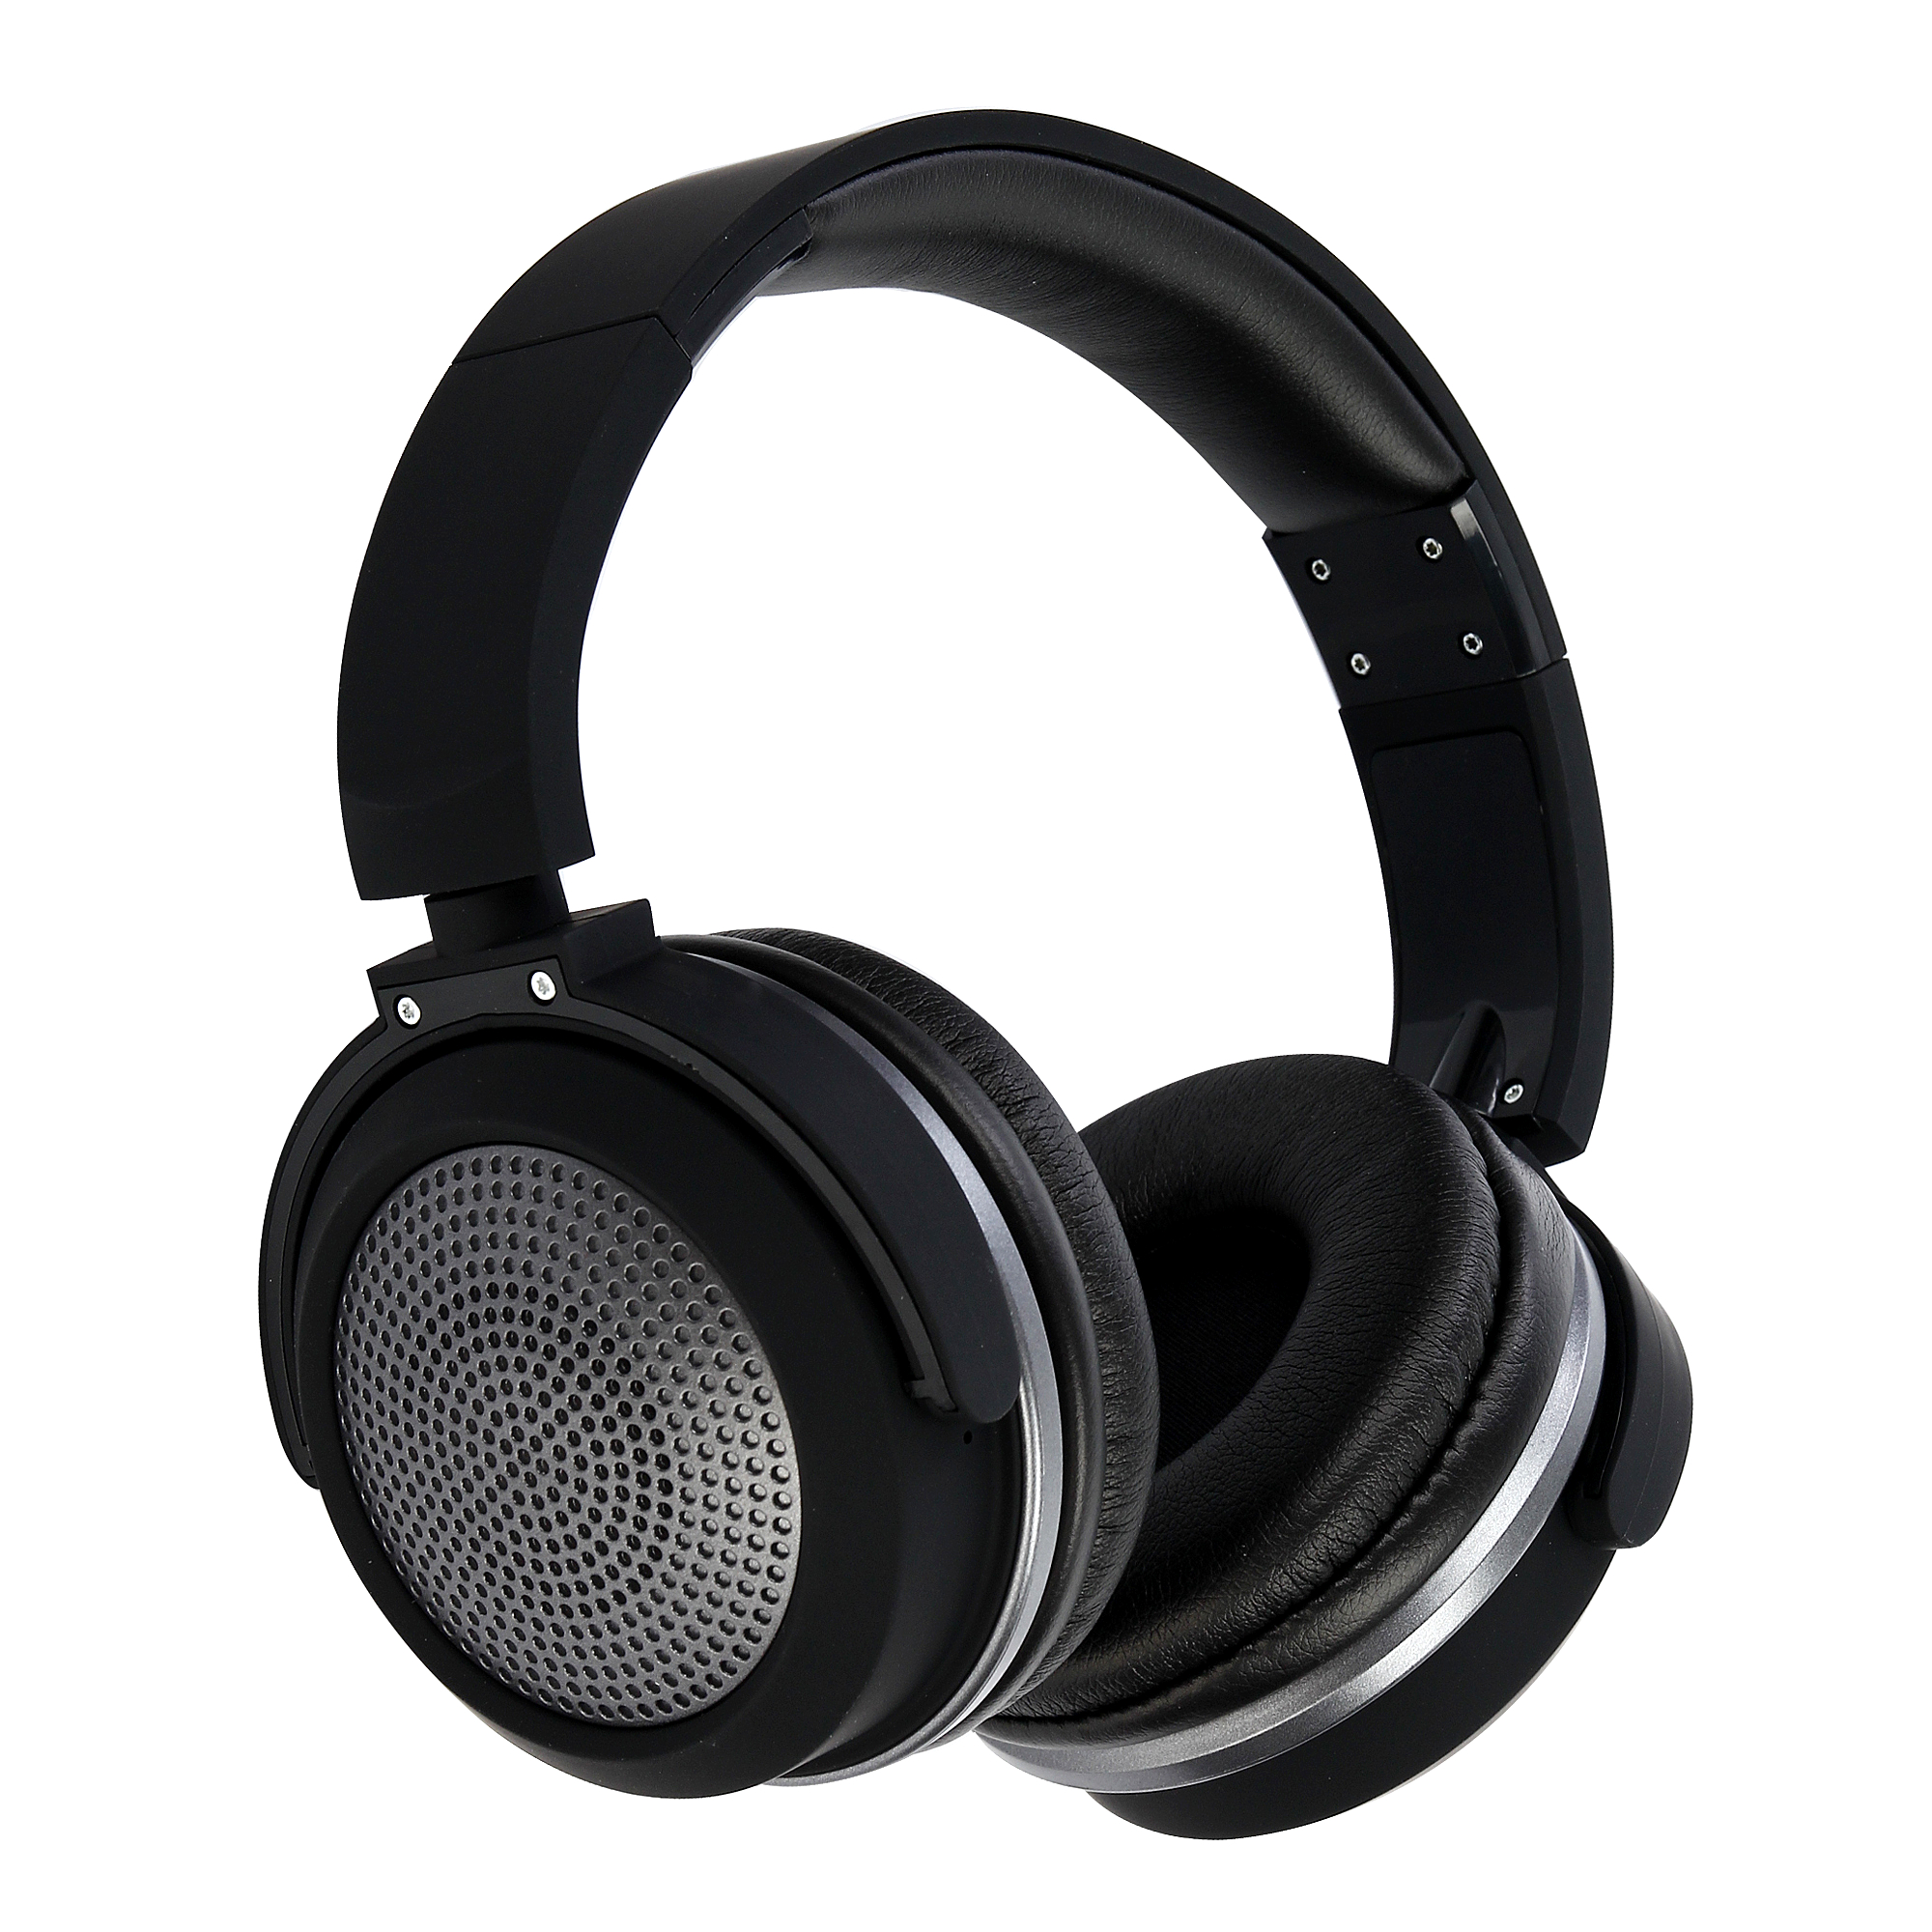 Symrun Wireless Stereo Headsets Bluetooth Version 4.2 For Mobile Phones Android Hot New Arrival Magift Bluetooth Headphones